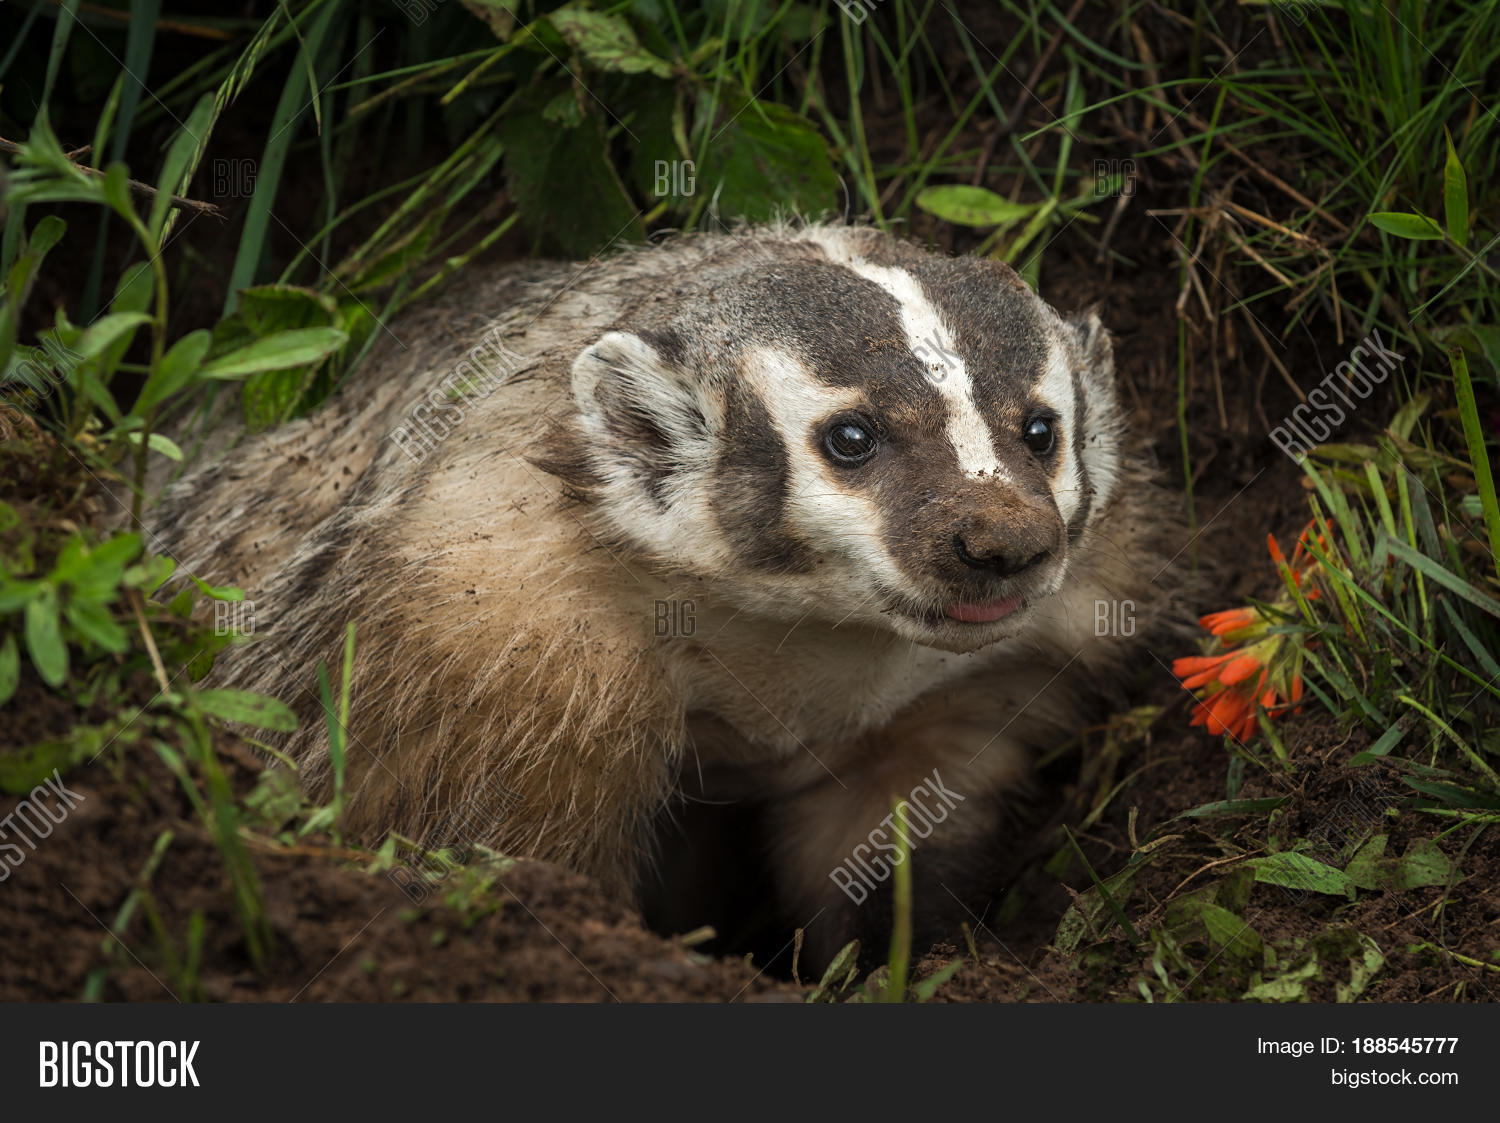 american,animal,badger,creature,critter,den,densite,horizontal,mammal,mustelidae,natural,nature,north,outdoors,summer,taxidea,taxidiinae,taxus,tongue,wildlife